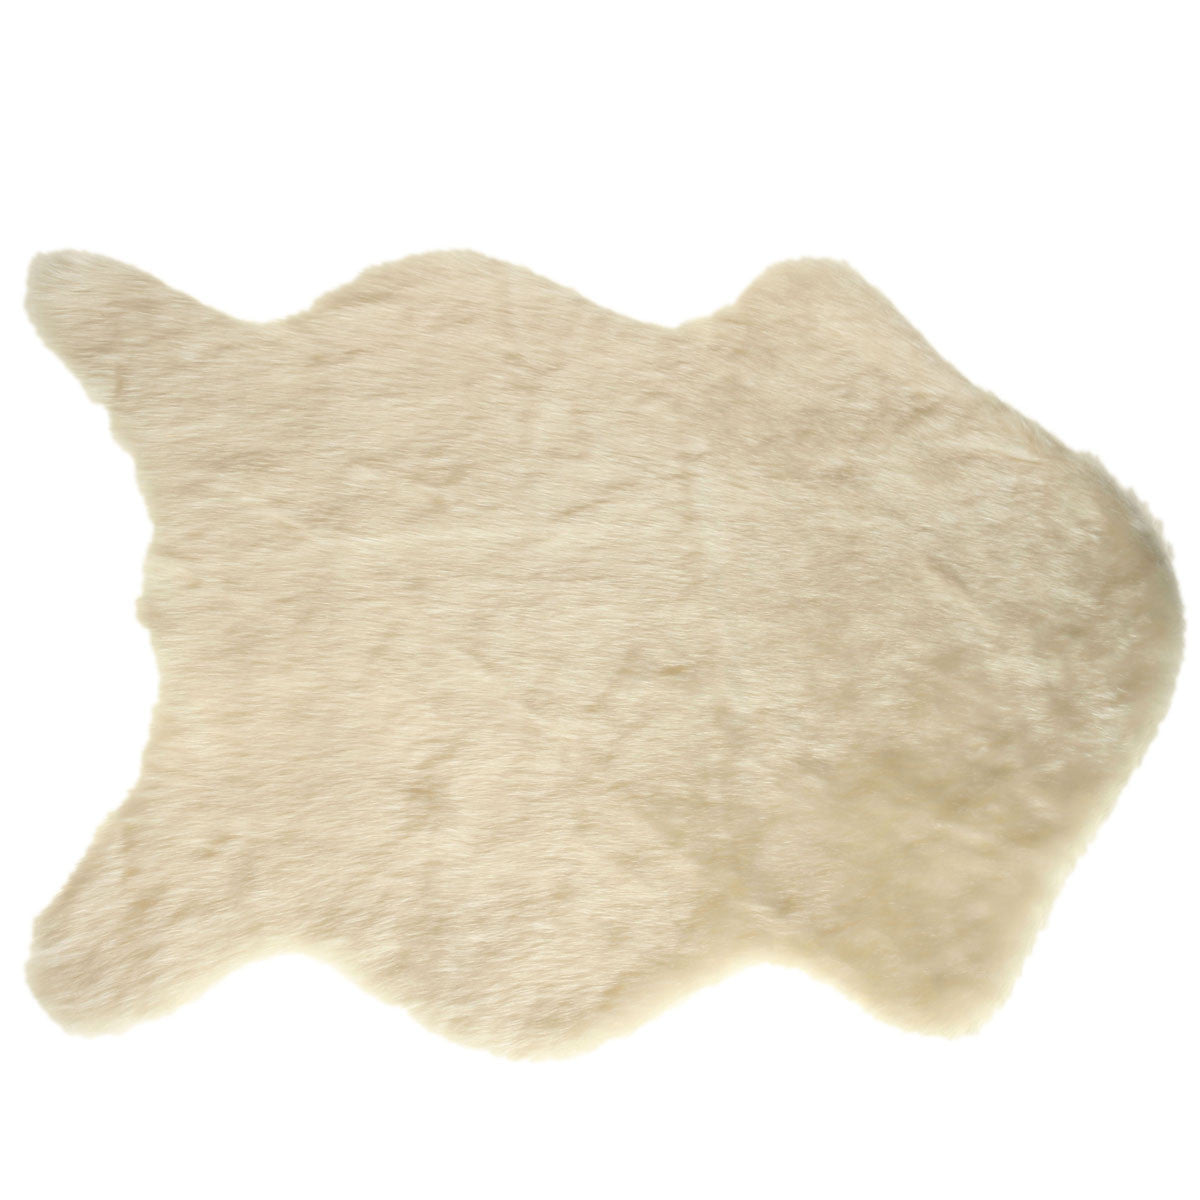 soft sheepskin rug mat chair cover shop elettra